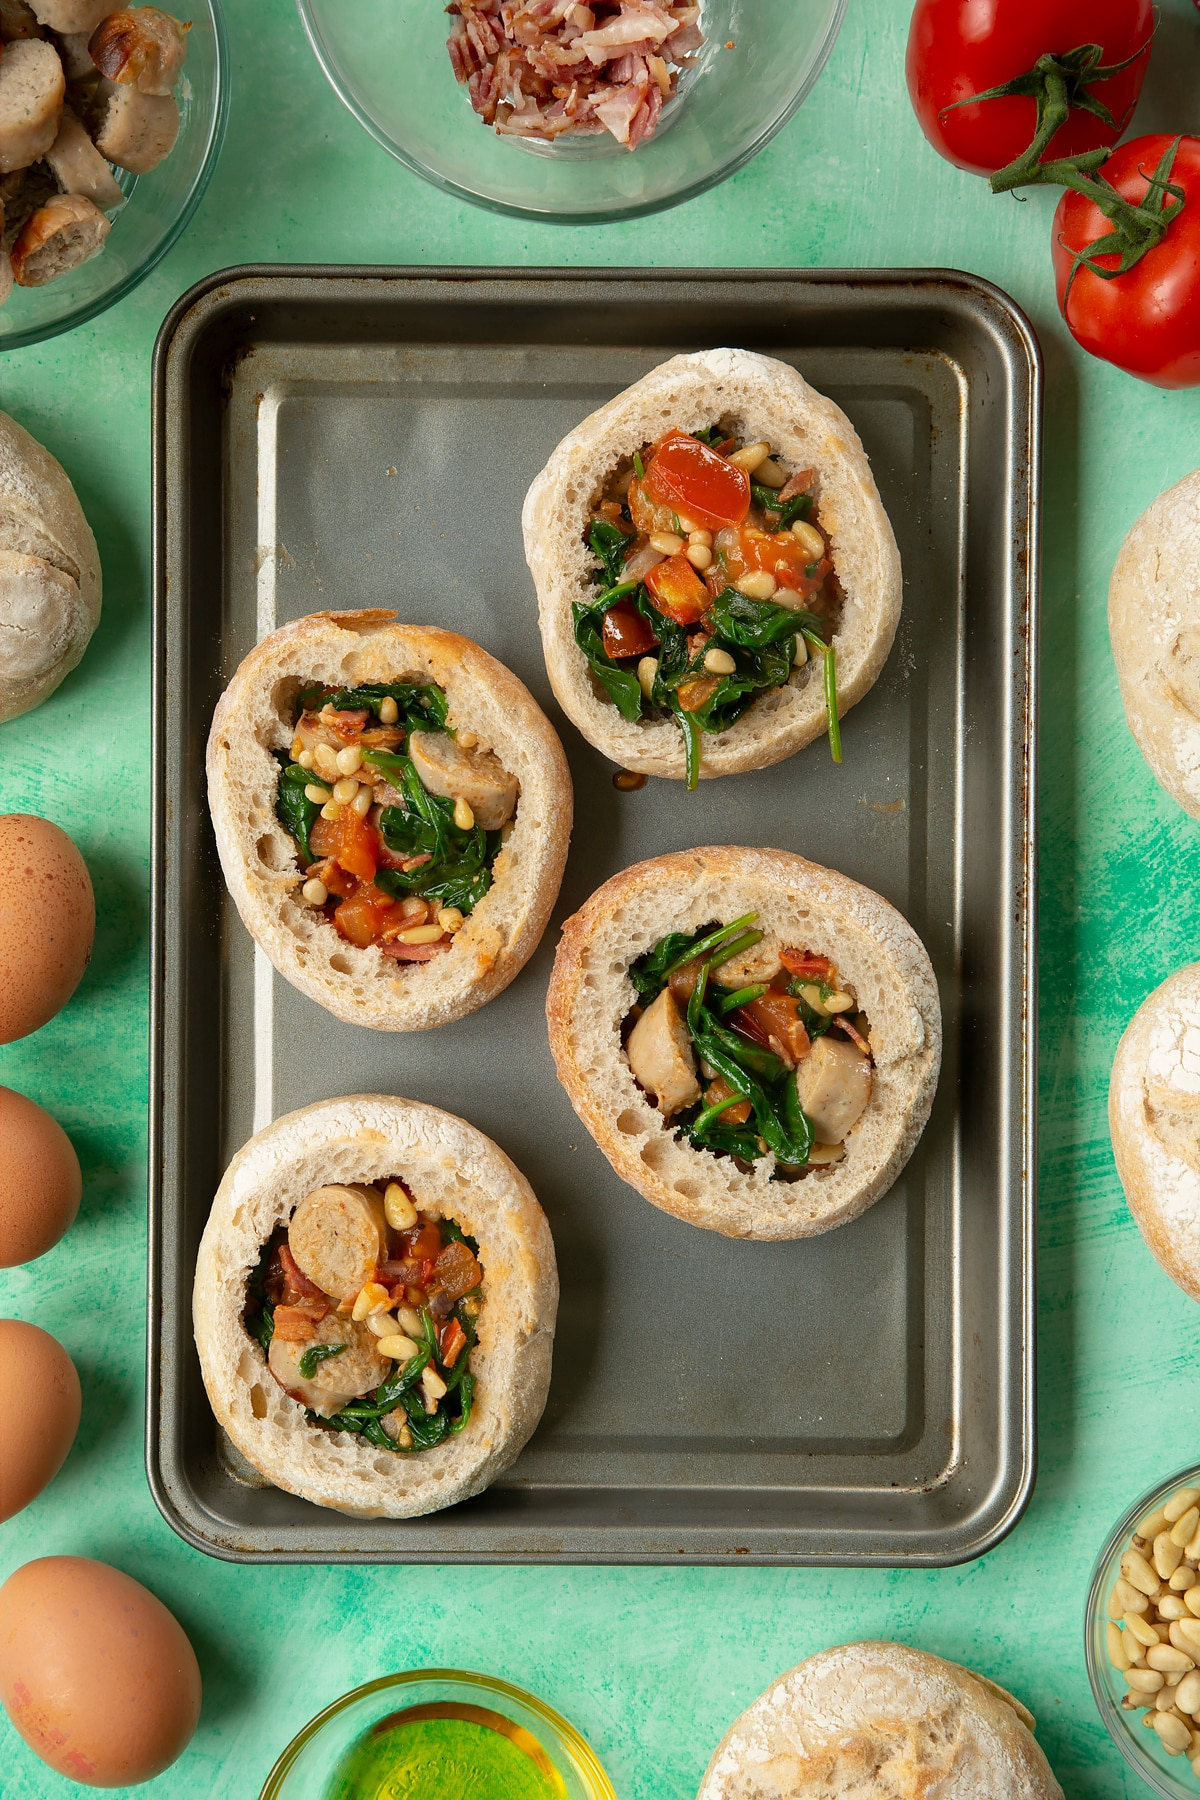 Four bread rolls on a baking tray. The rolls are hollowed out and filled with a mix of fried sausage, bacon, chopped tomatoes, pine nuts and wilted spinach. The tray is surrounded by ingredients to make breakfast rolls.